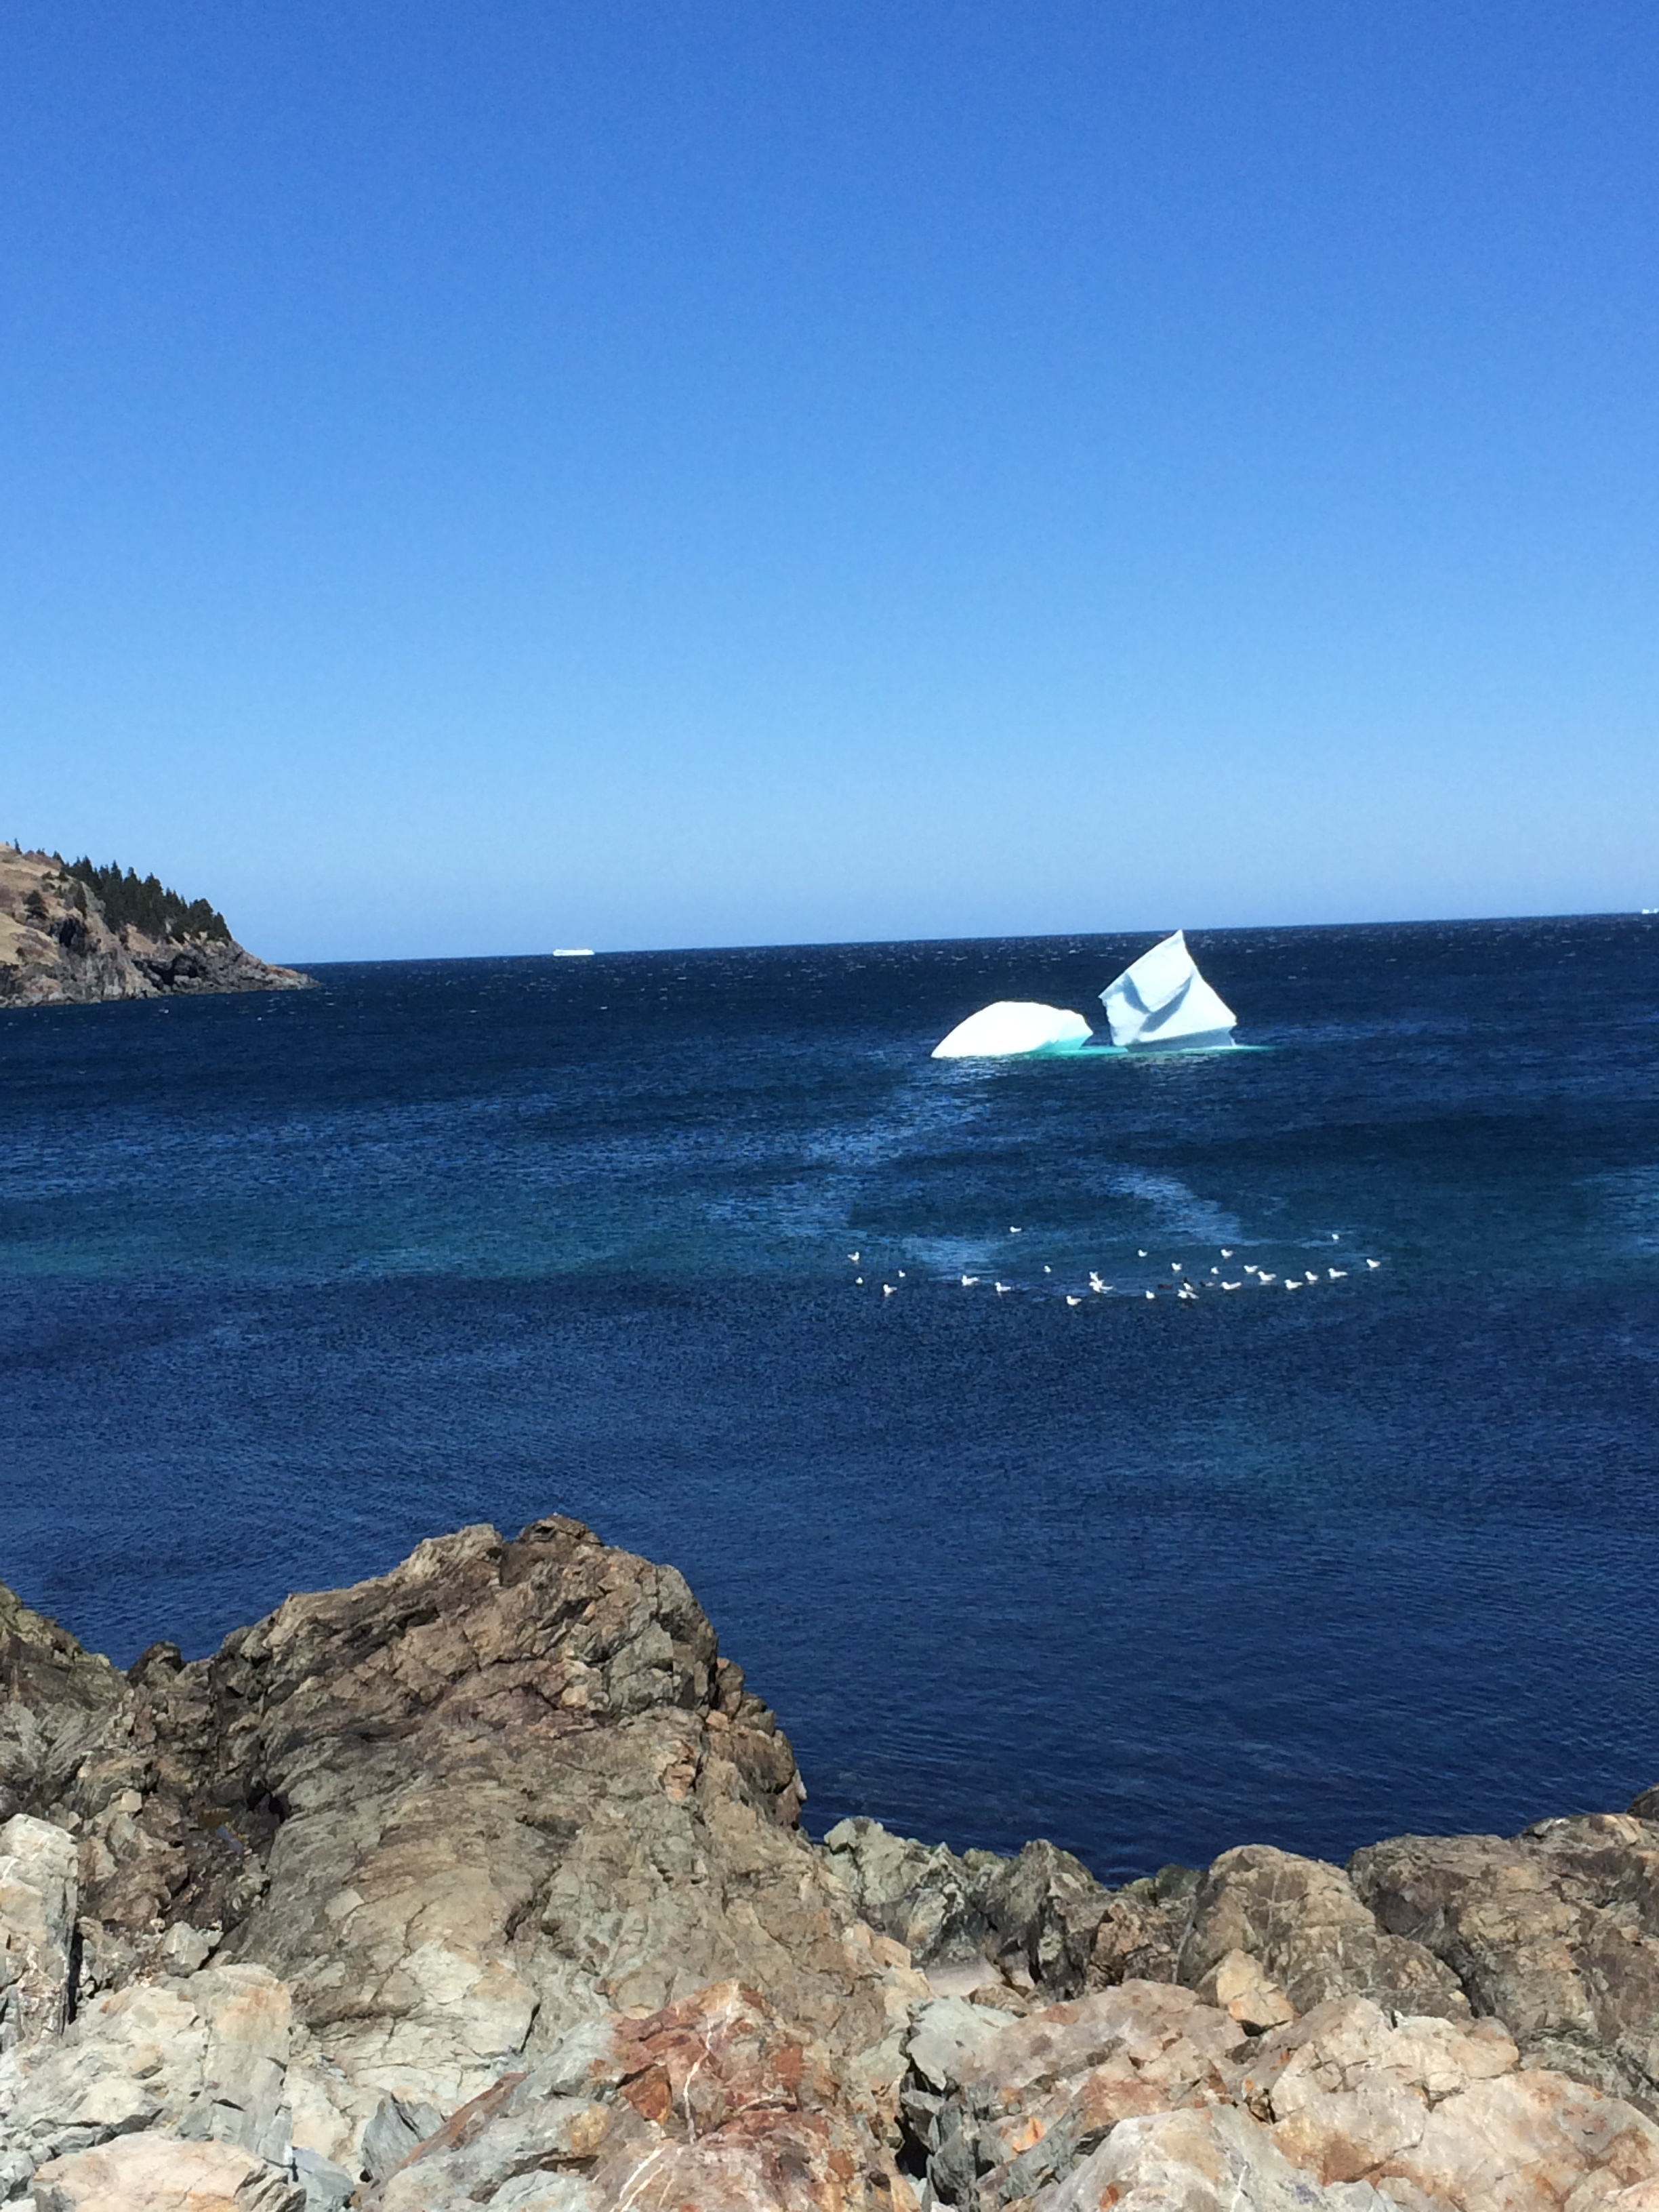 The beautiful inlet of the real Torbay. This iceberg probably melted a little faster as it entered the outflow from a sewer pipe. Note the congregation of seagulls. Ahem